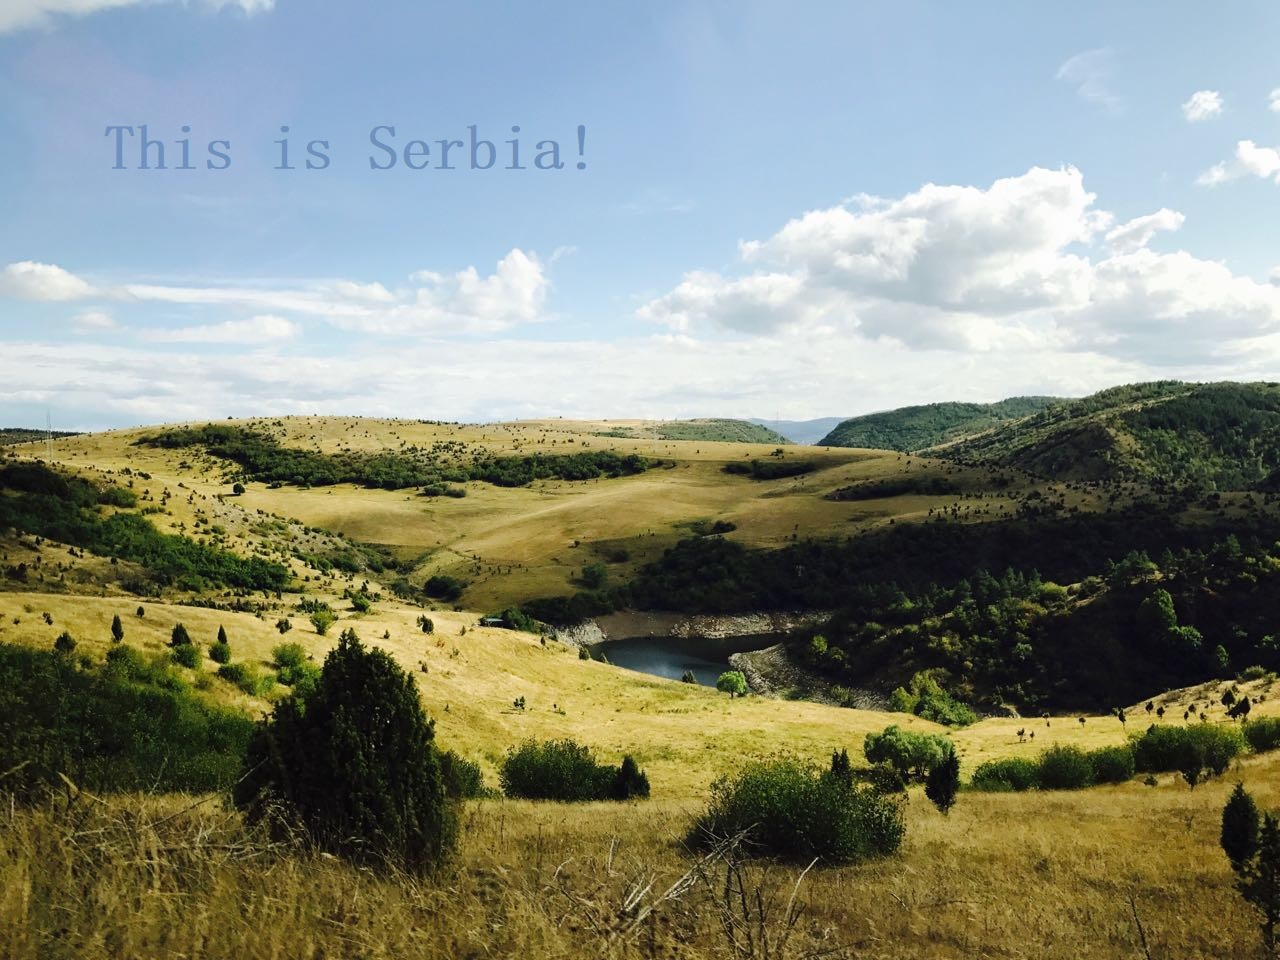 this is beautiful serbia